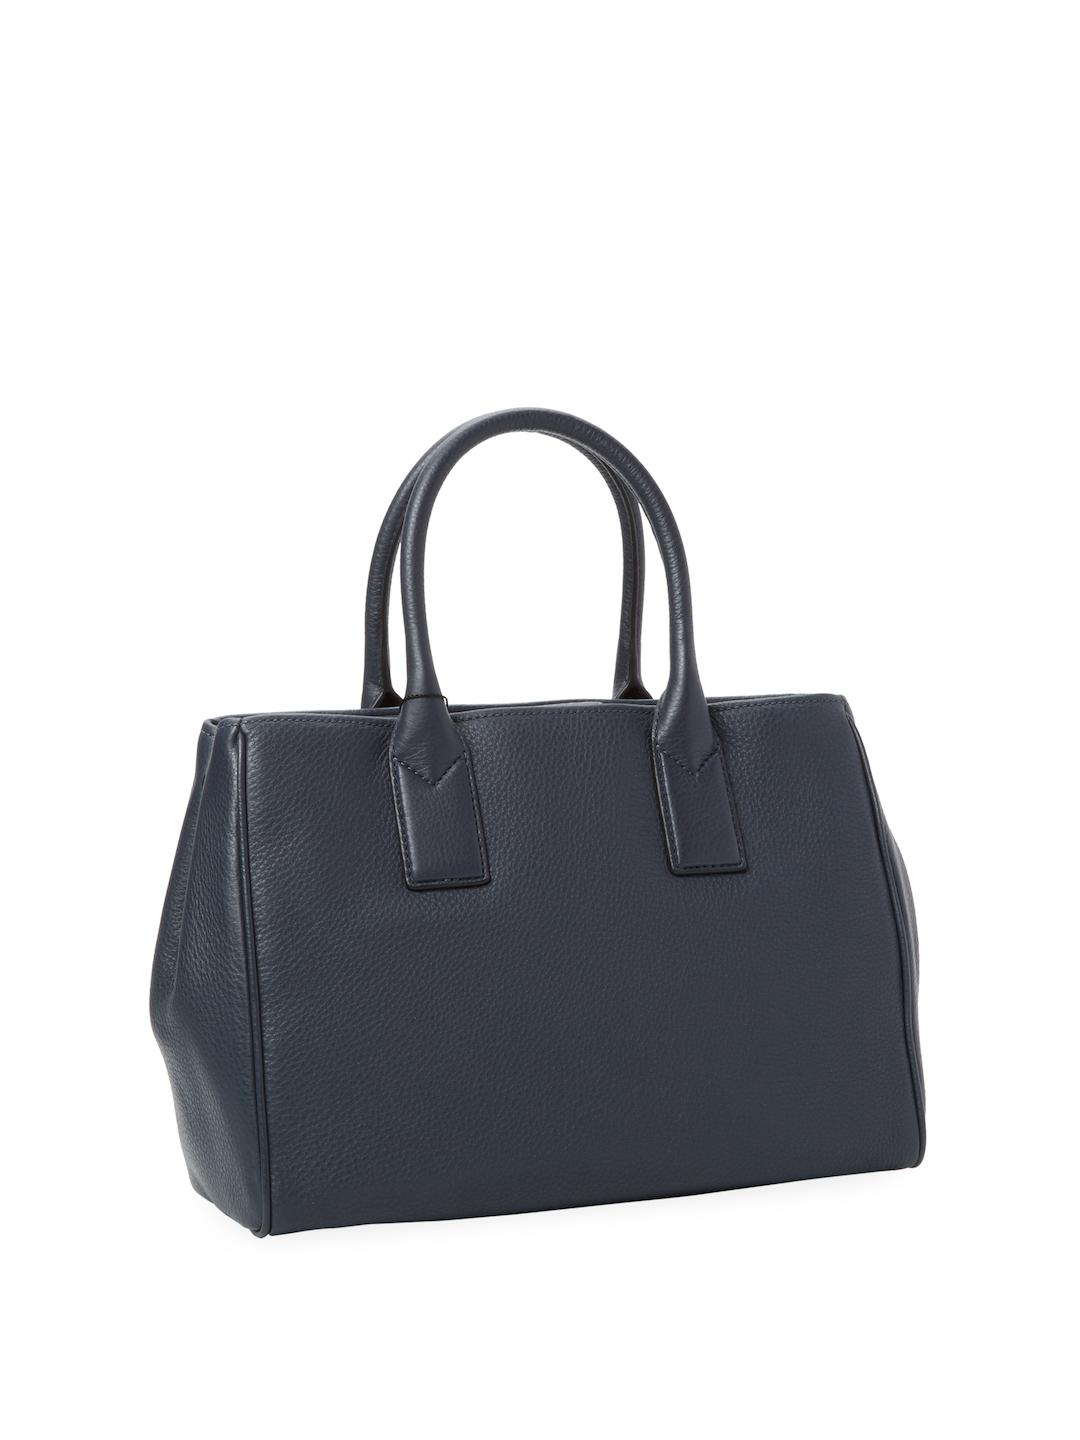 Marc Jacobs Leather Empire City Tote in Steel Grey (Grey)